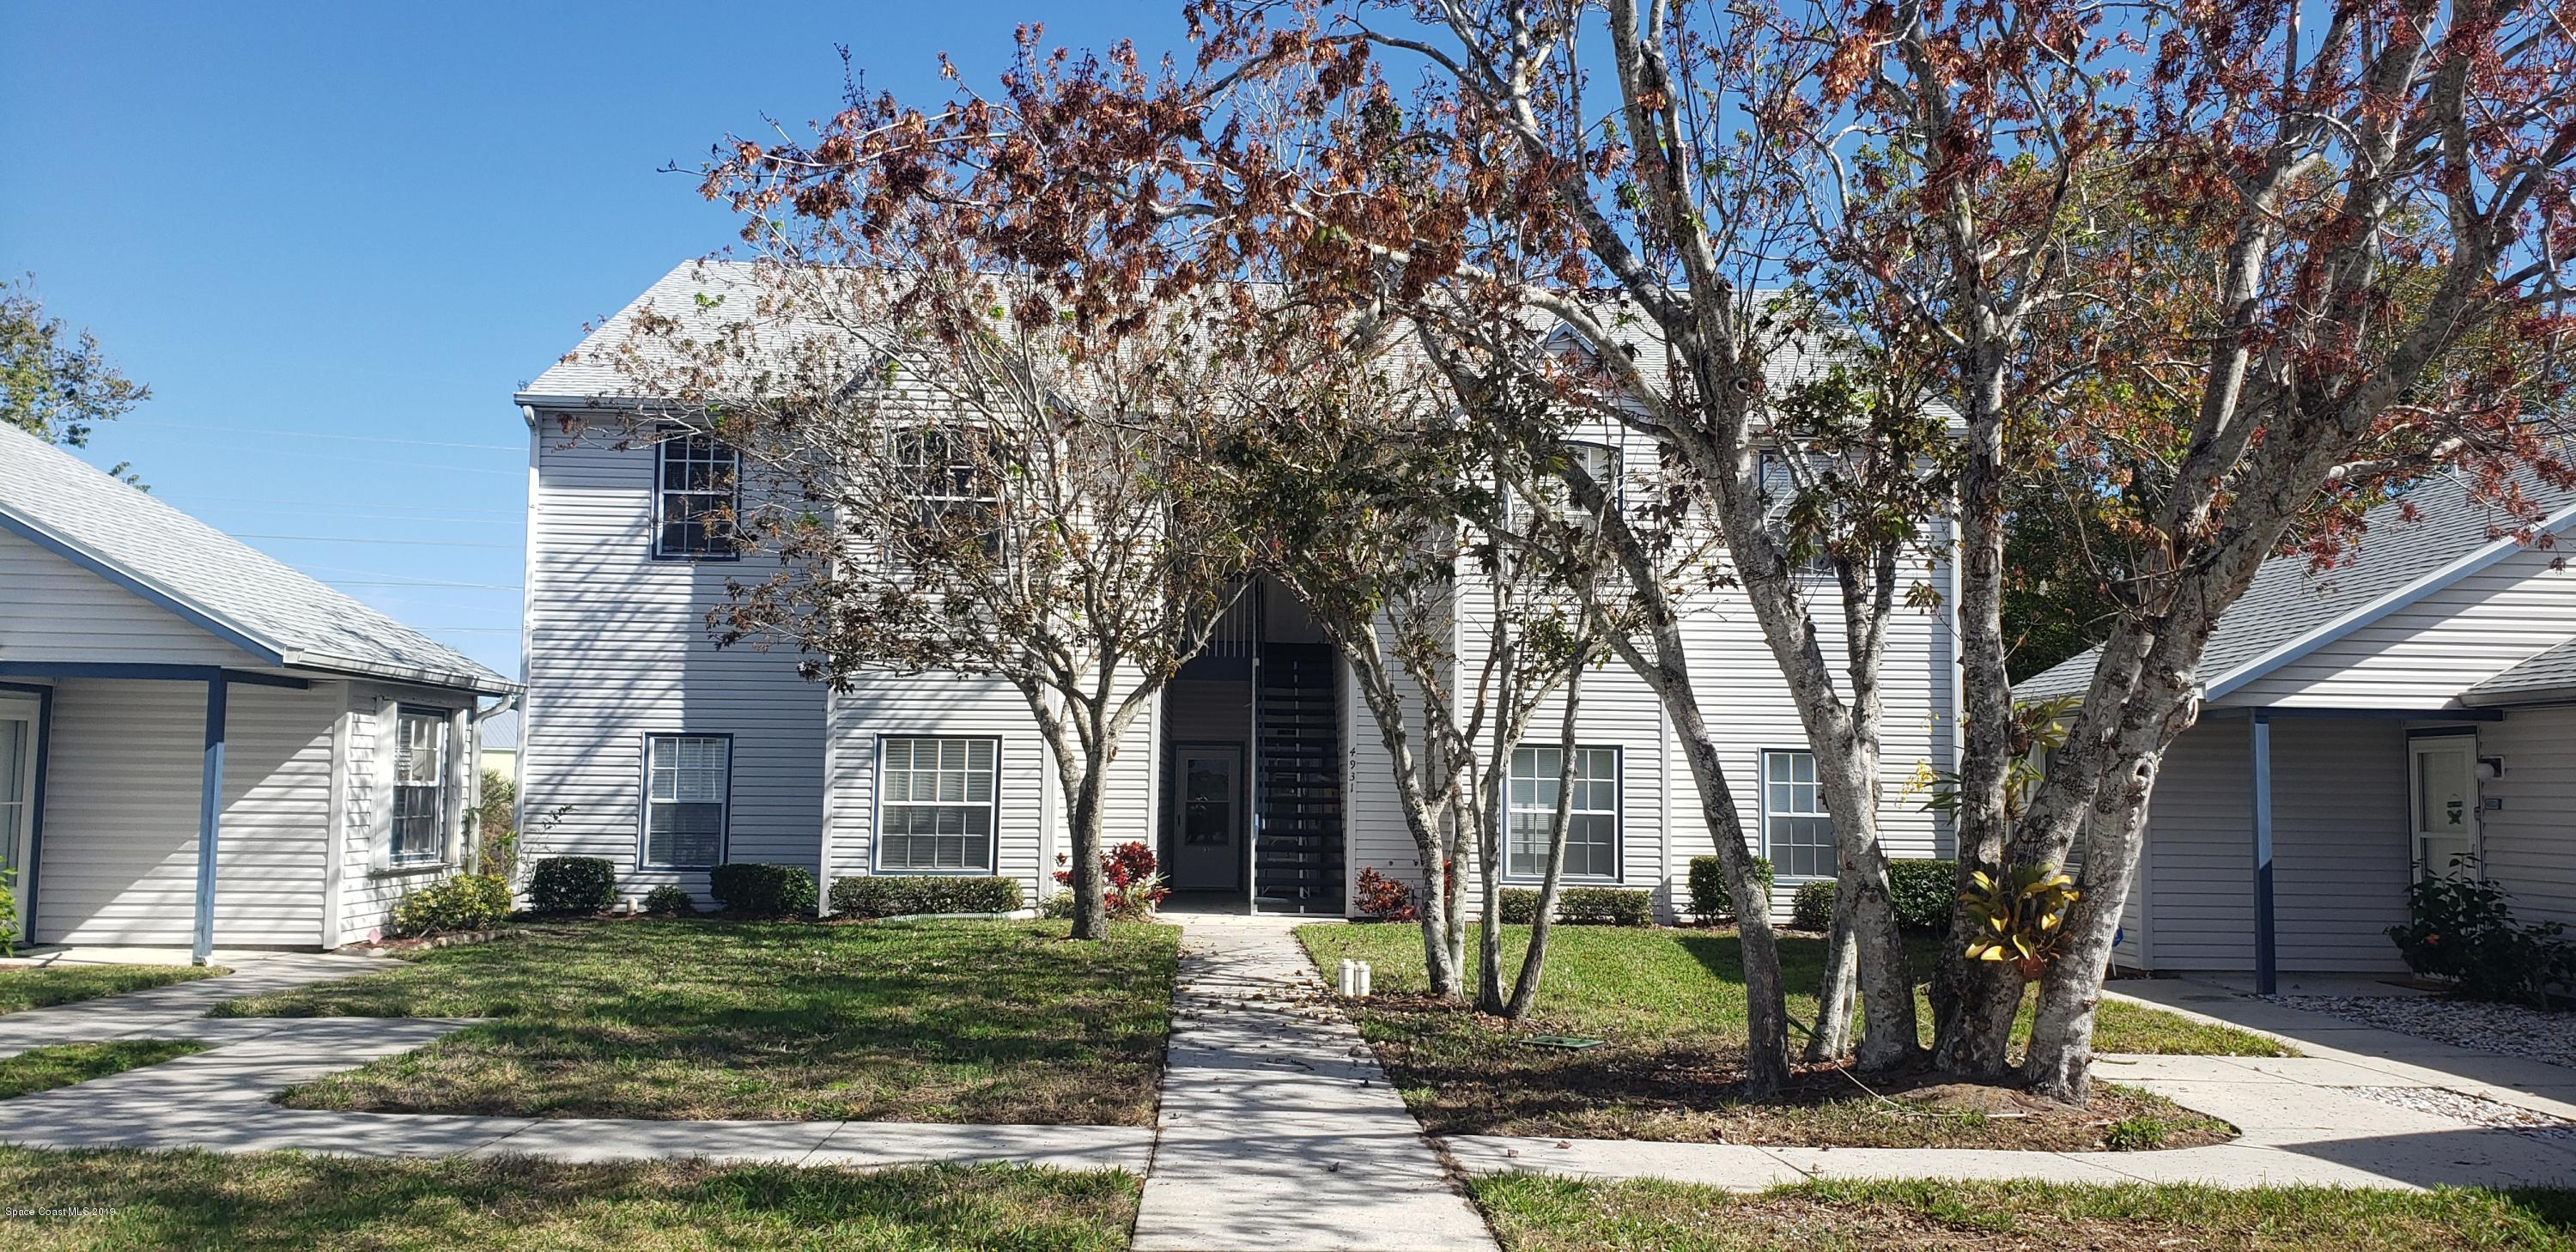 Single Family Home for Sale at 4931 Lake Waterford 4931 Lake Waterford Melbourne, Florida 32901 United States